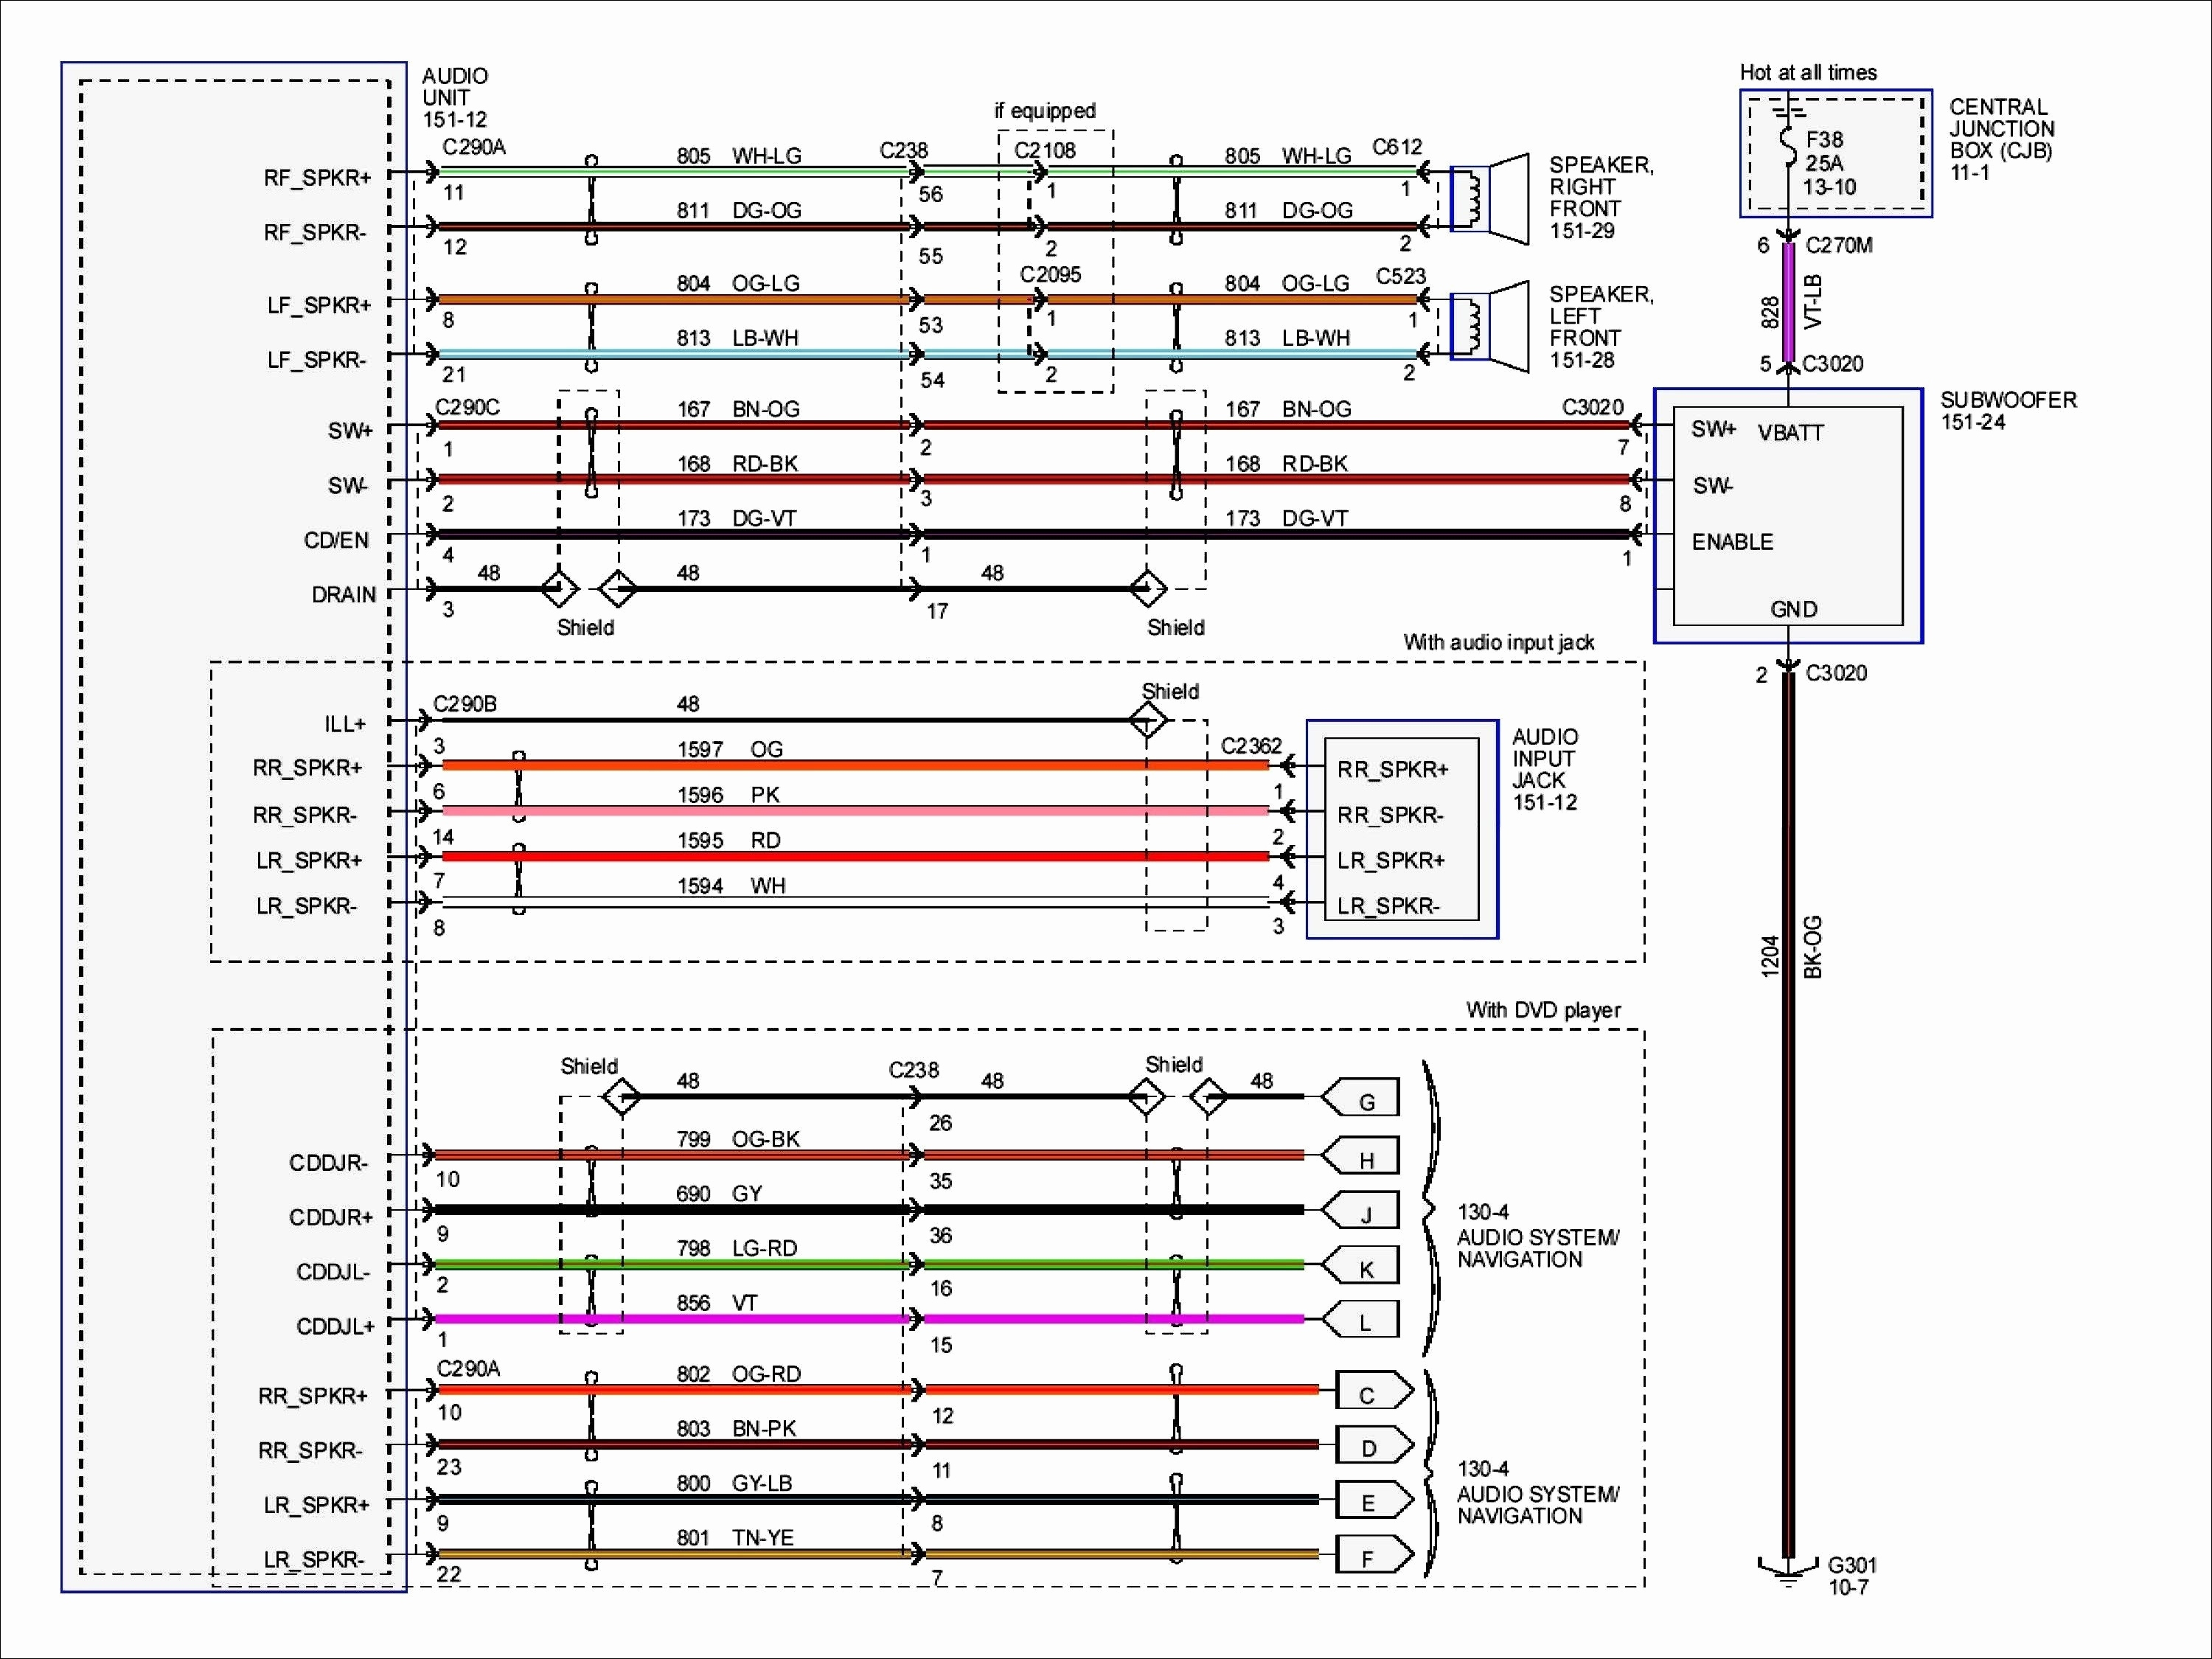 [WLLP_2054]   SG_1383] Wiring Harness 2004 Grand Prix | Scosche Wire Diagram 2005 Chrysler |  | Onom Embo Adit Ologi Lave Synk Cette Mohammedshrine Librar Wiring 101